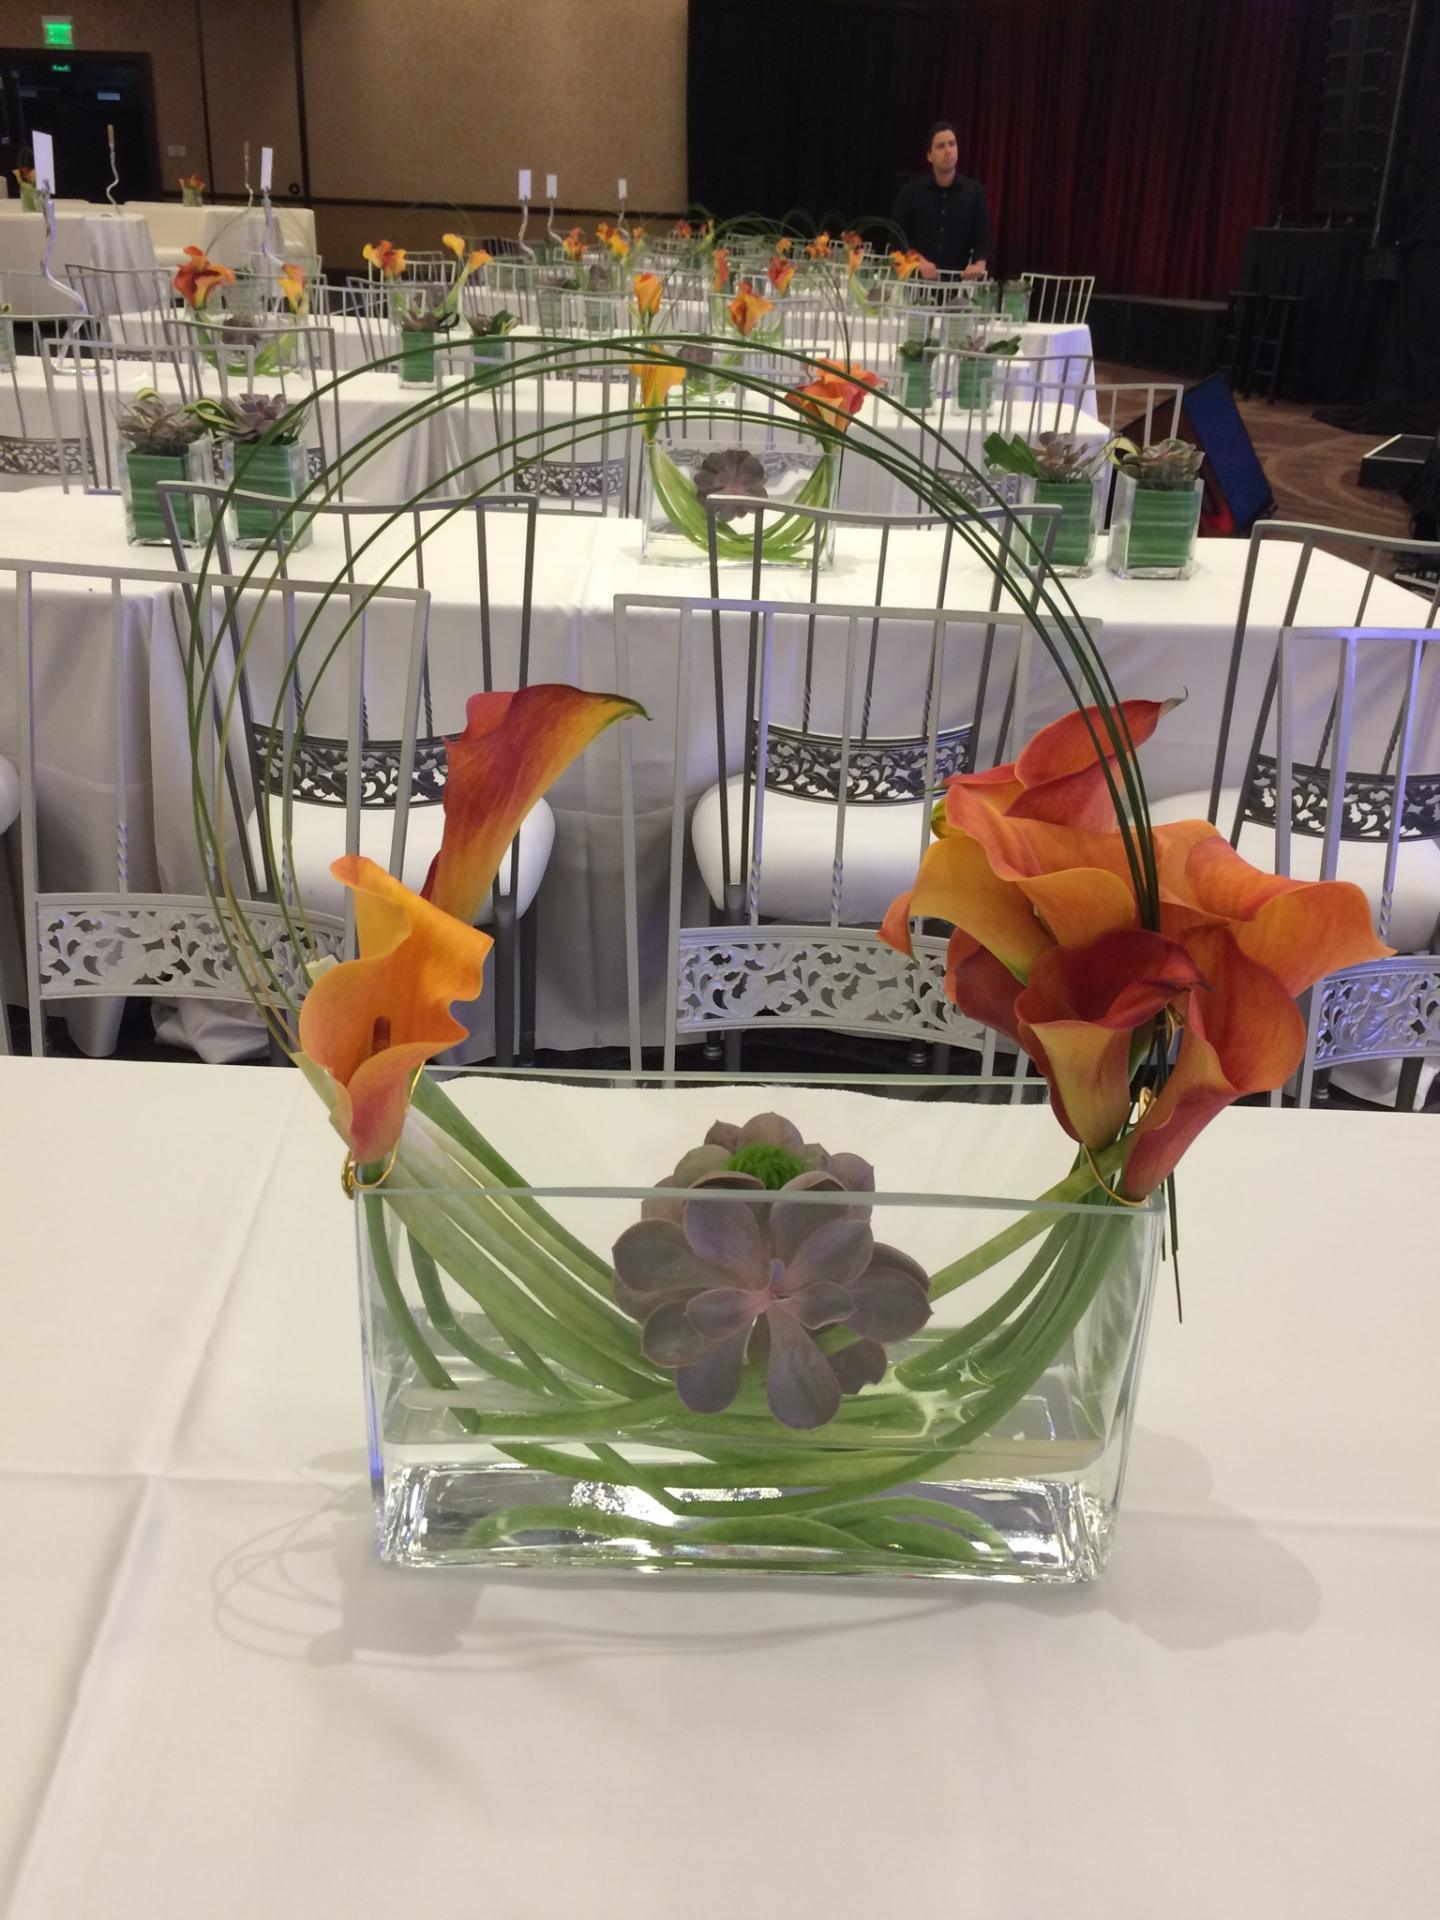 Event Flowers in Las Vegas, Creative orginal flower arrangements for any Event in Las Vegas |Creative Convention Flowers| Terrariums | Succlent gardens | Airplants